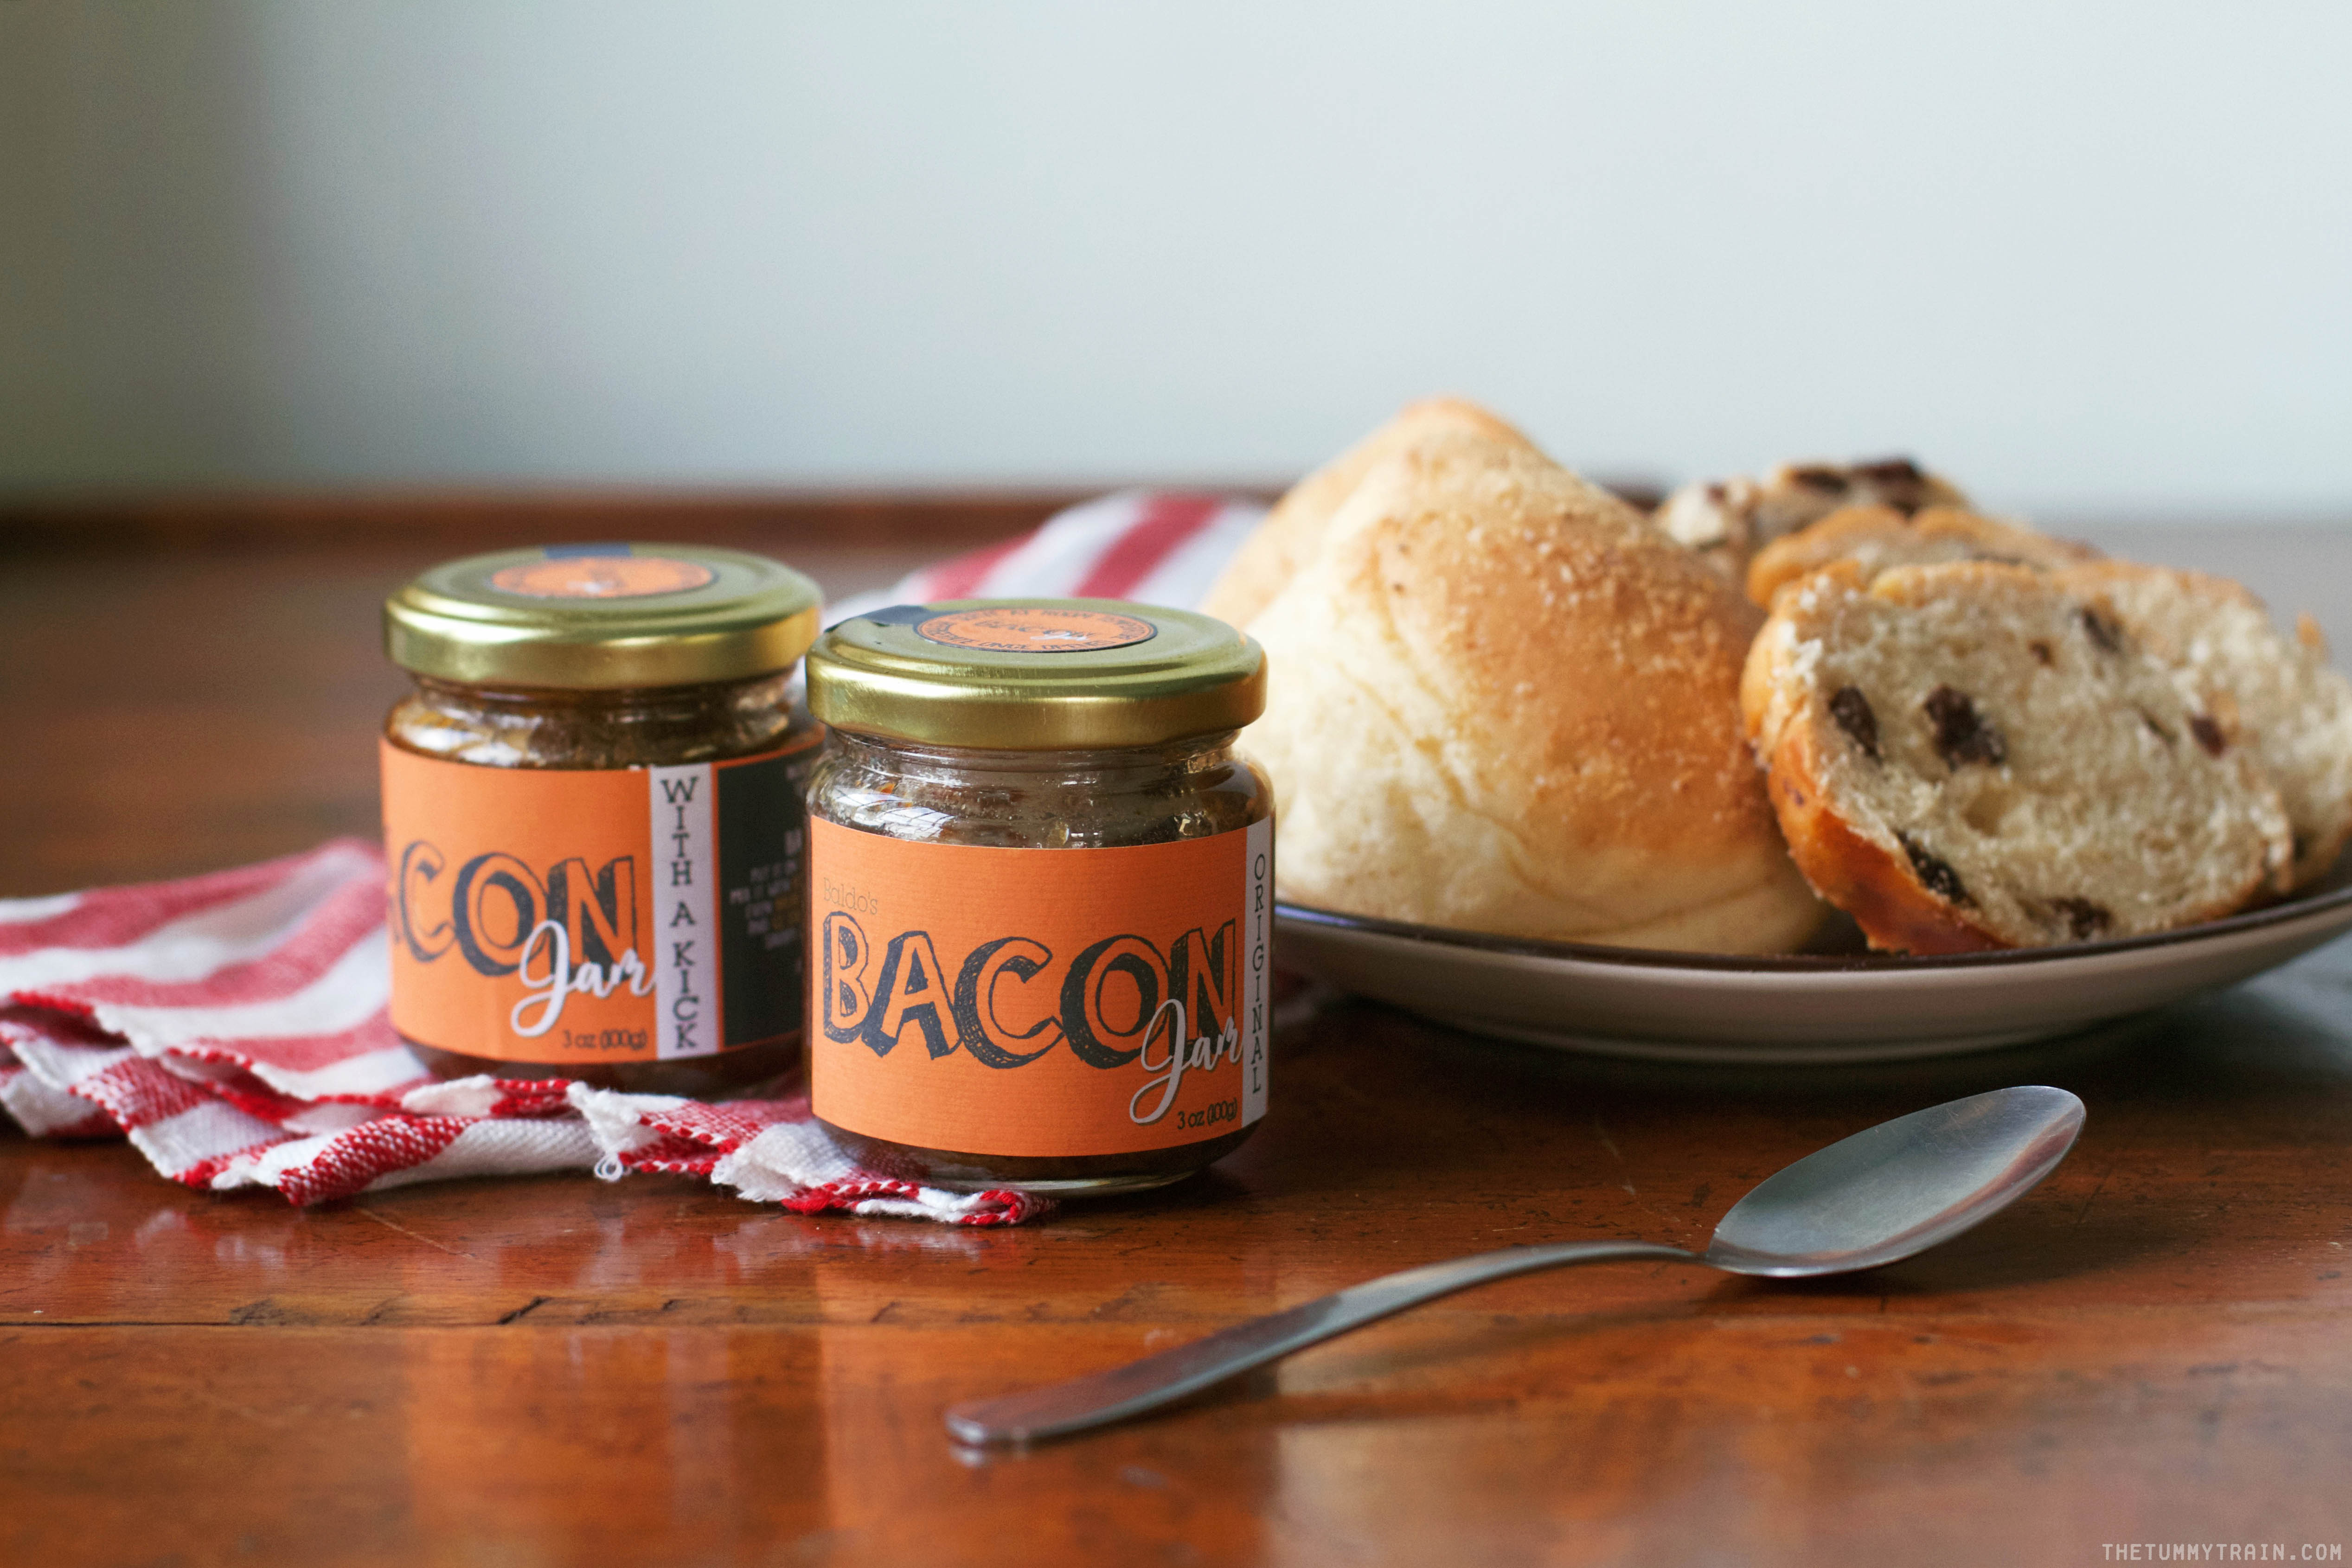 Baldos Bacon Jam 1B - Eat or Retreat: Baldo's Bacon Jam in Original & With A Kick